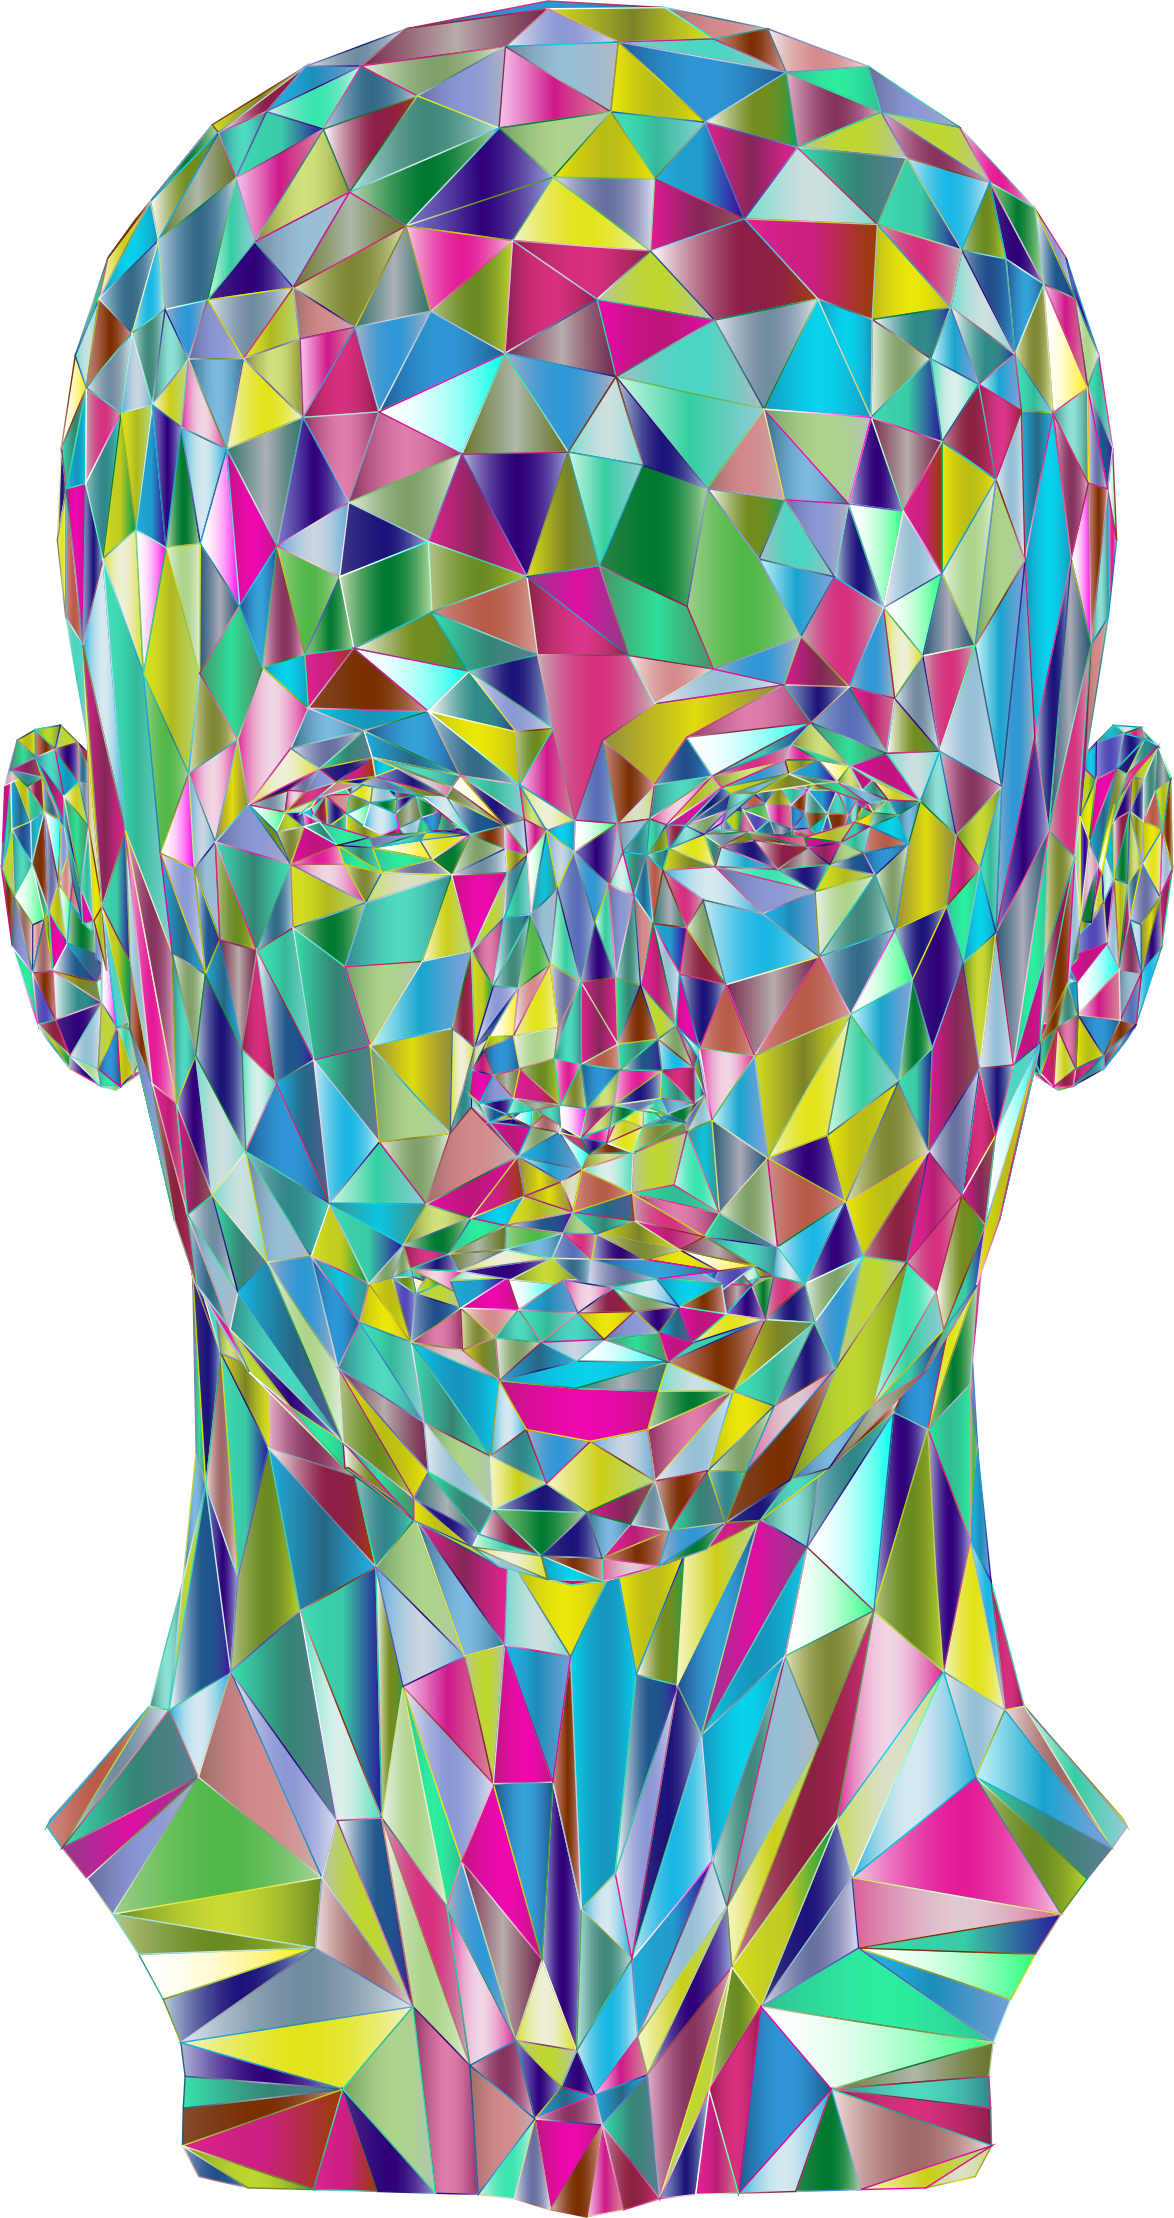 Prismatic Low Poly Female Head 2 Variation 2 by GDJ